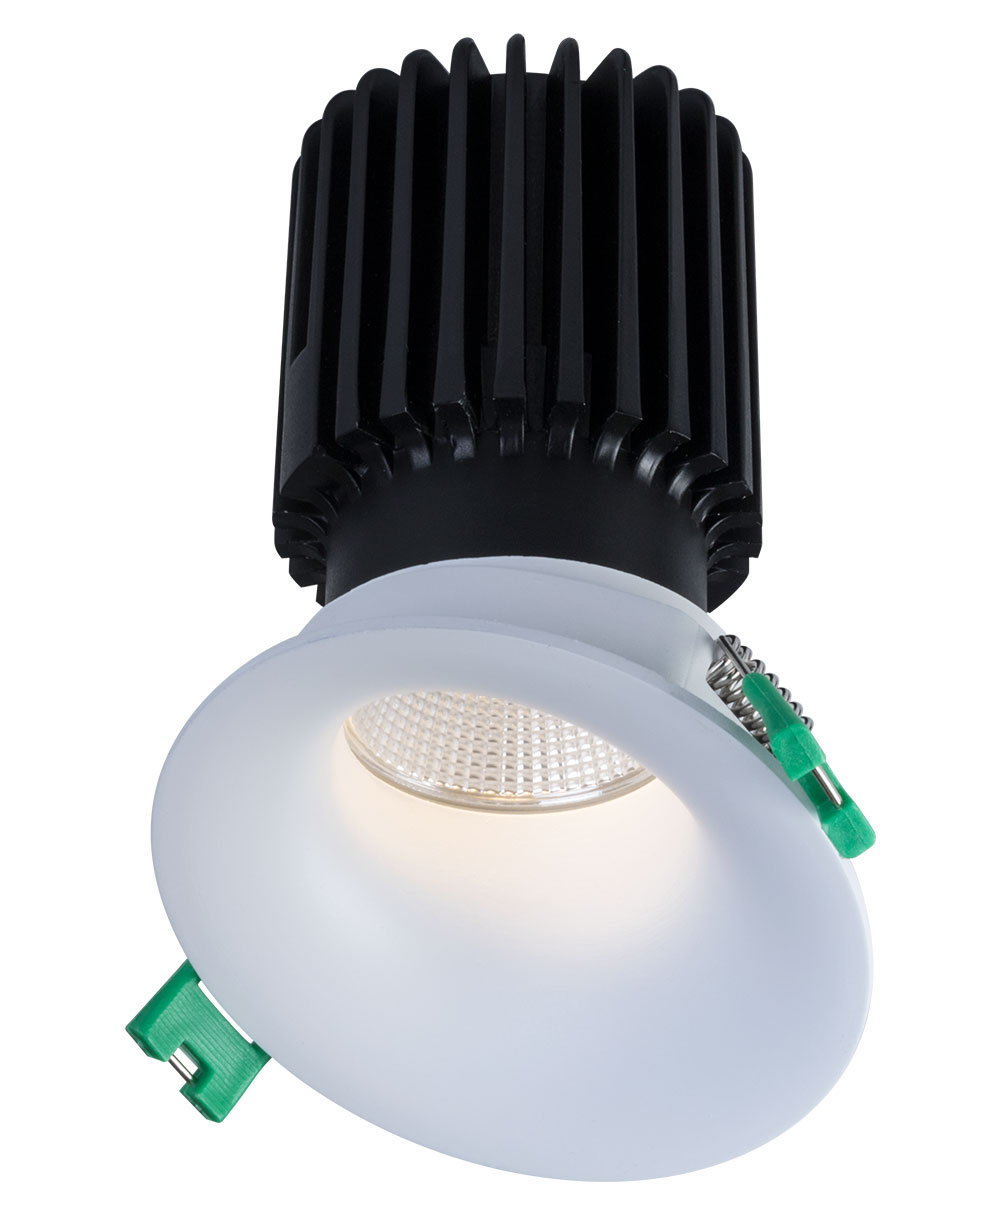 Sigma 2 Round Slope Ceiling Wall Wash LED Fixture